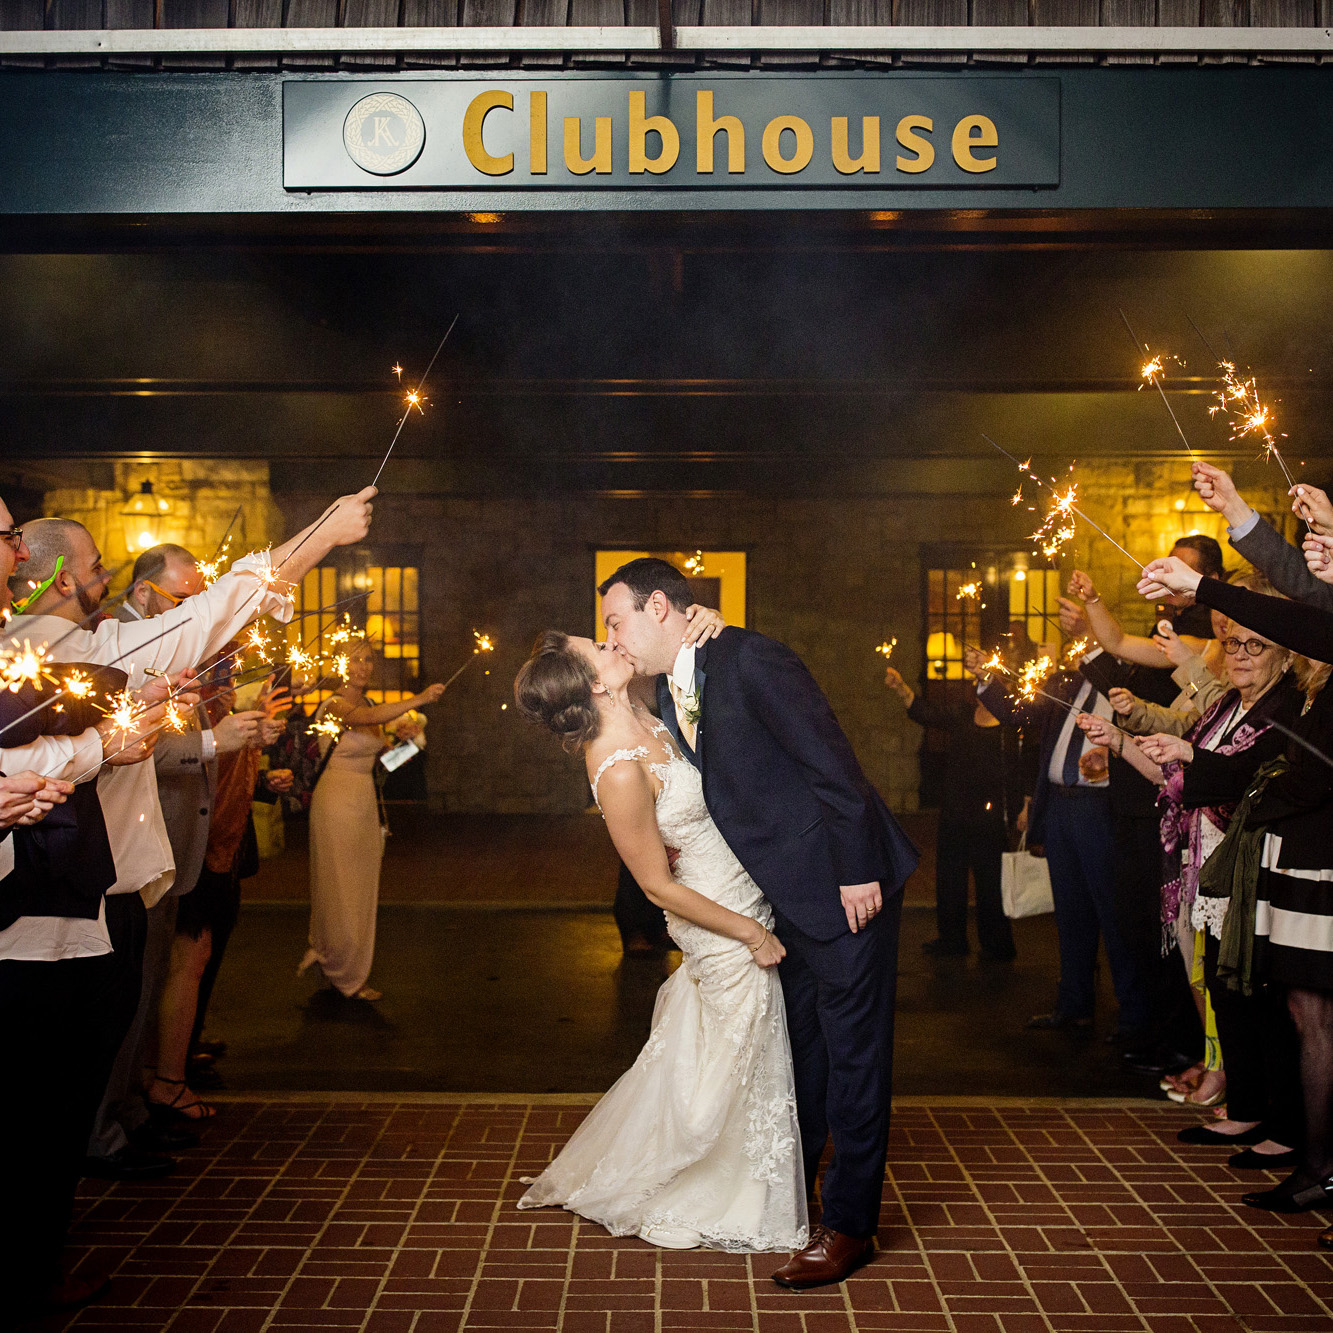 Seriously_Sabrina_Photography_Lexington_Kentucky_Downtown_Keeneland_Clubhouse_Wedding_Spitzer_164.jpg